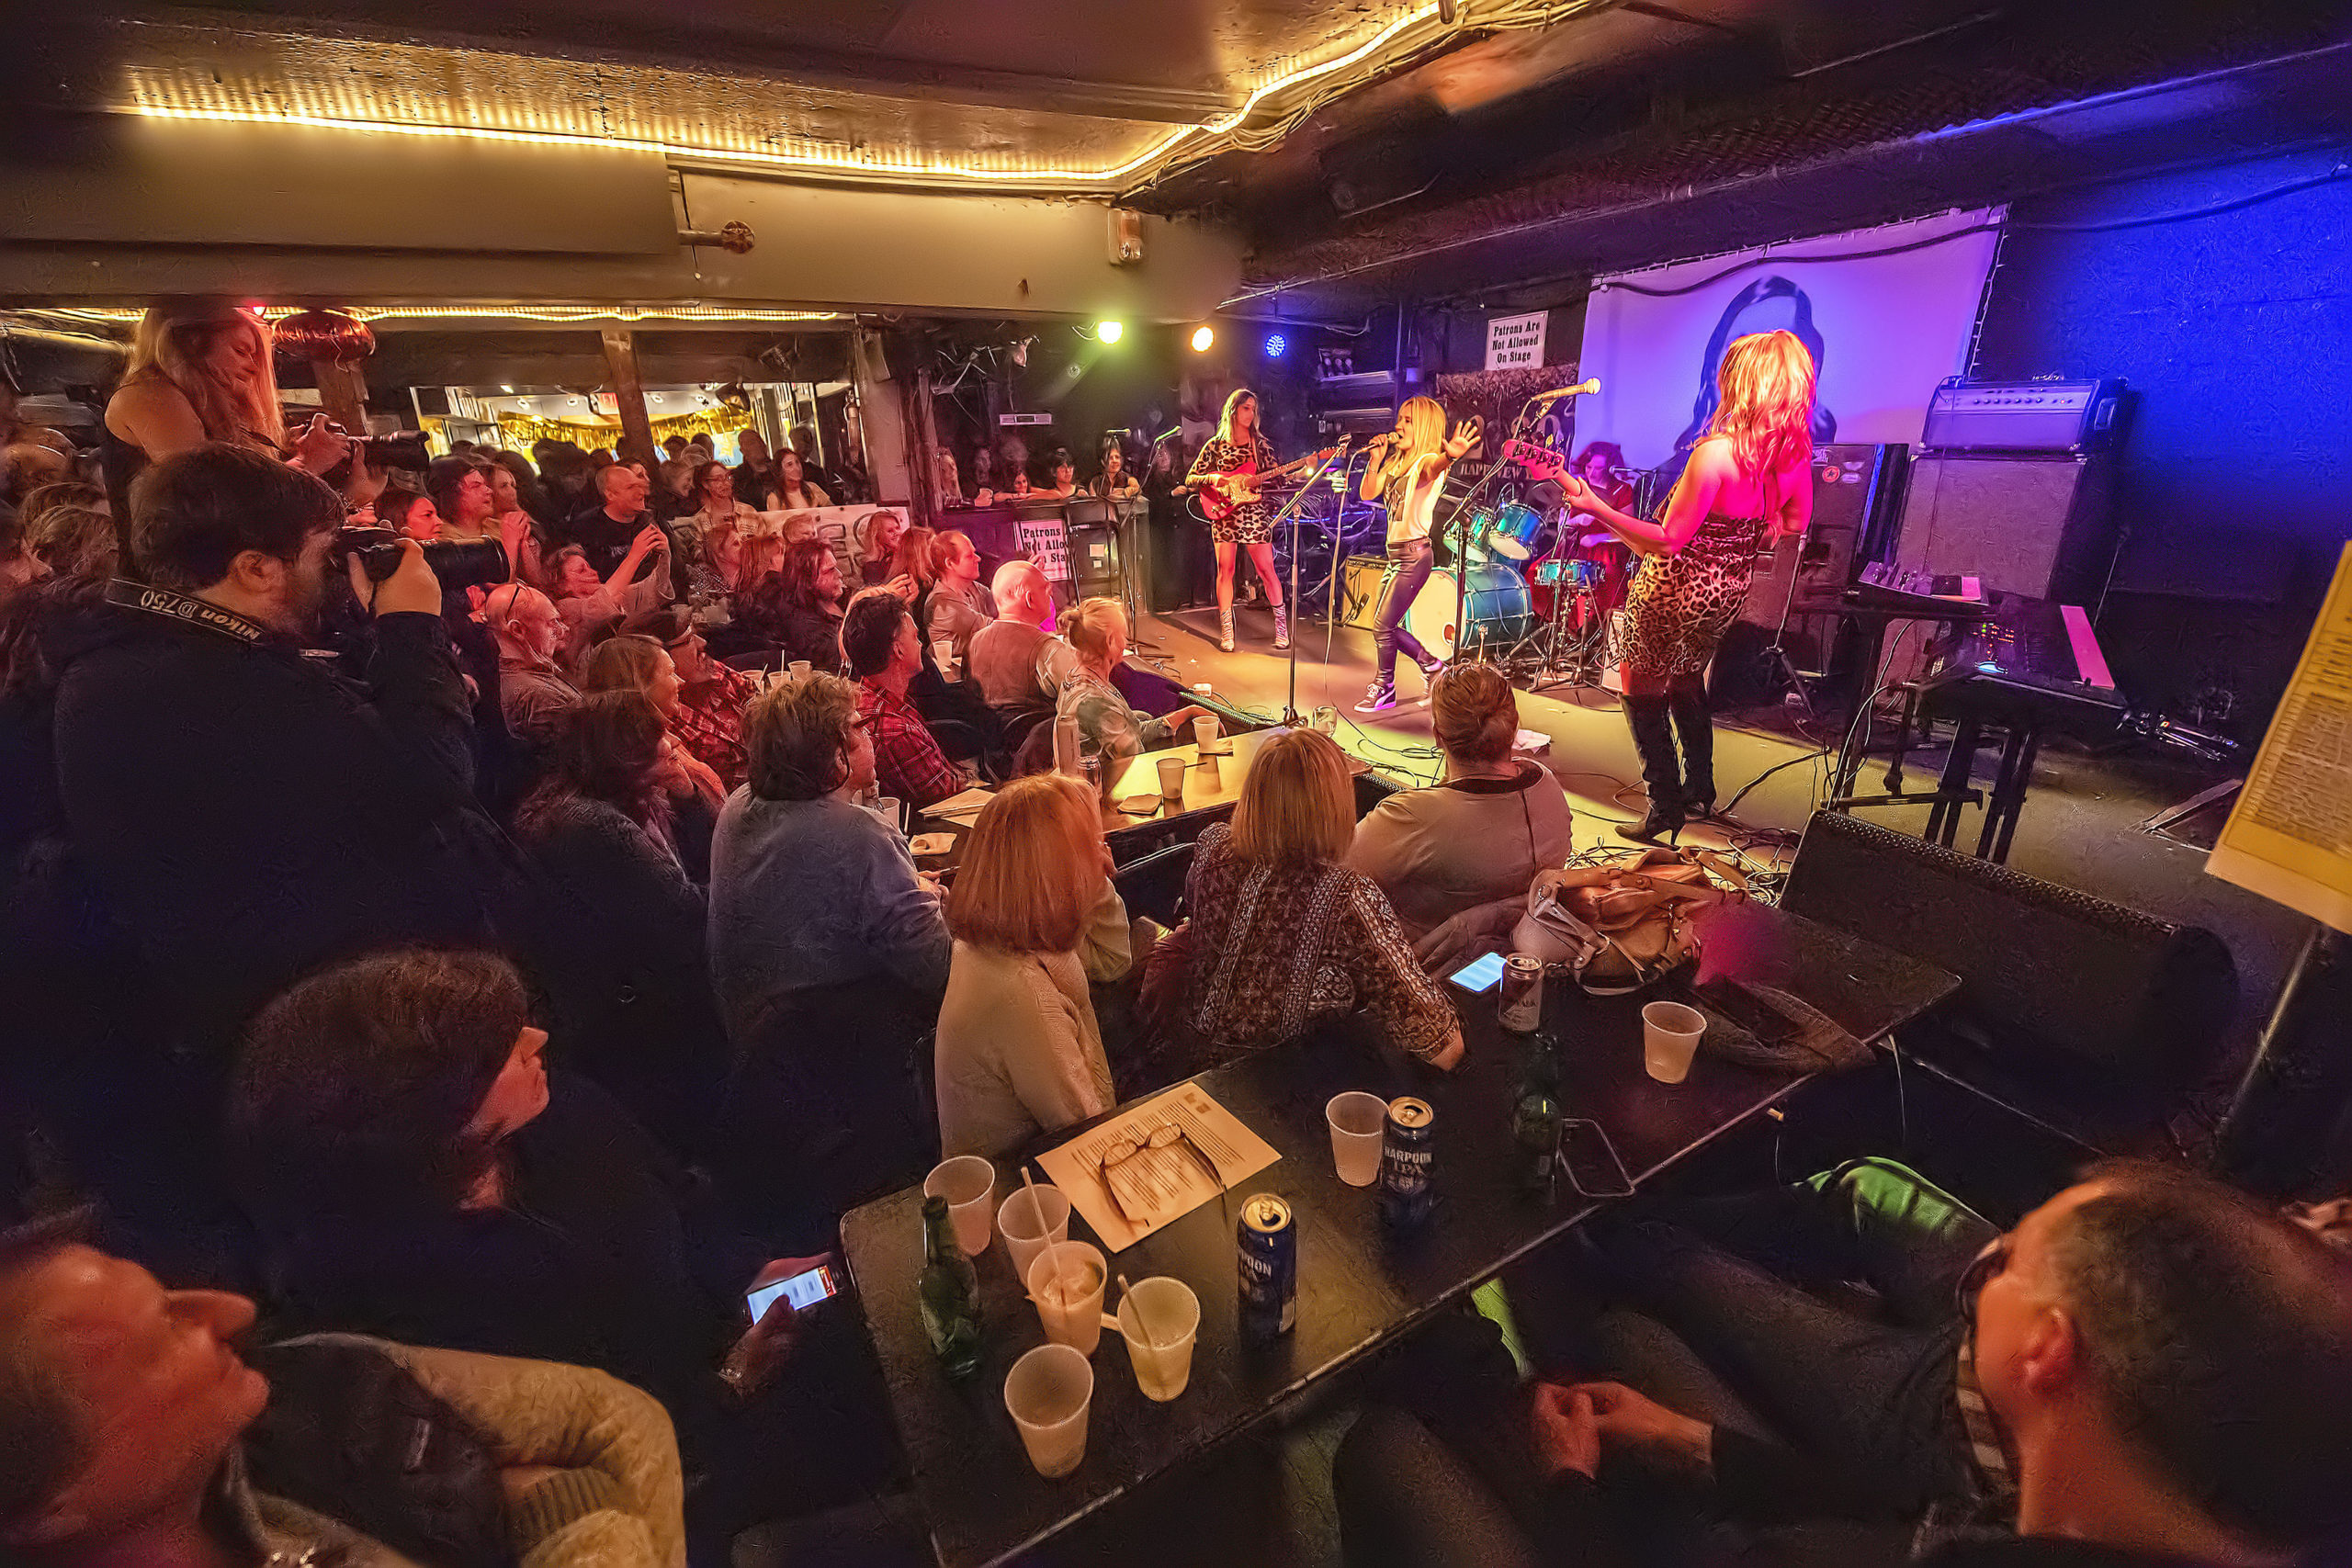 The band Minxx takes the stage to a capacity crowd during the 4th Annual Battle of the Fantasy Girl Bands to benefit the Neo-Political Cowgirls that was held at the Stephen Talkhouse in Amagansett on Saturday night.   MICHAEL HELLER